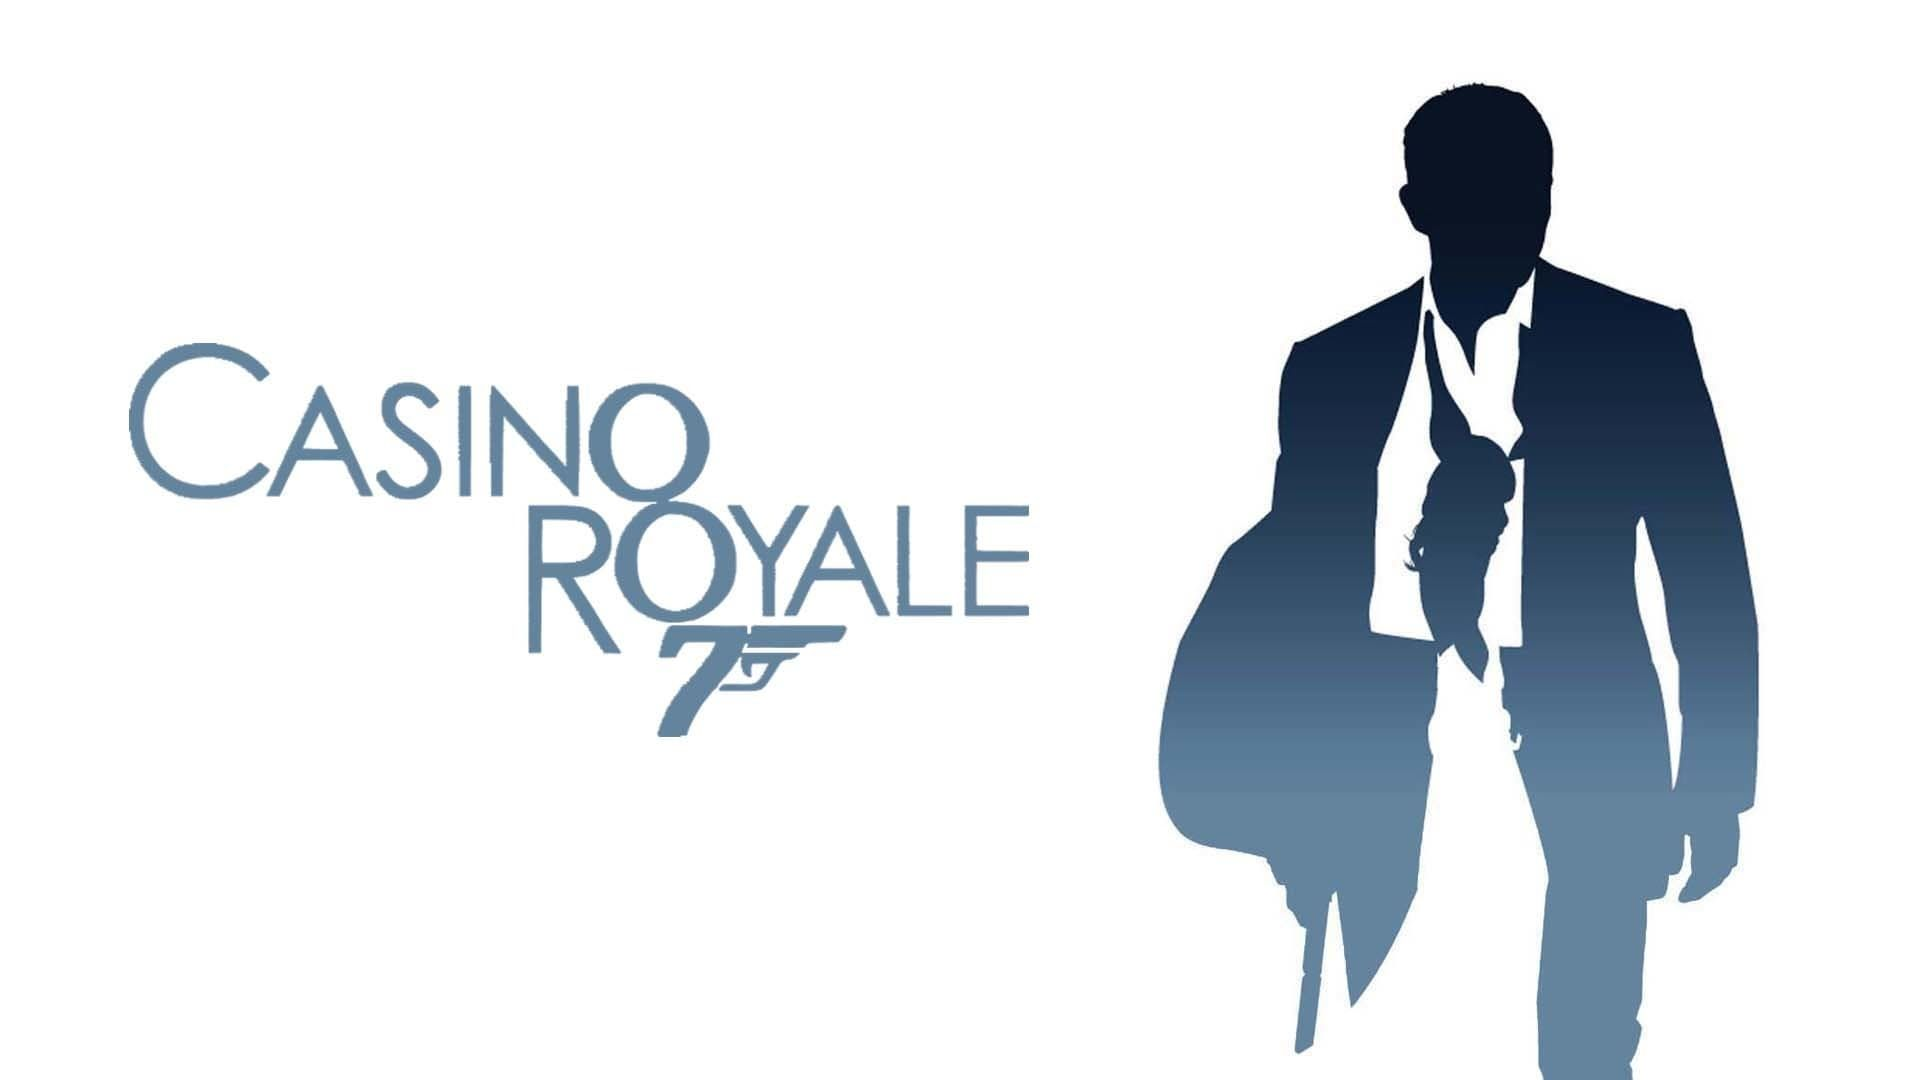 James Bond Casino Royale Ganzer Film Deutsch